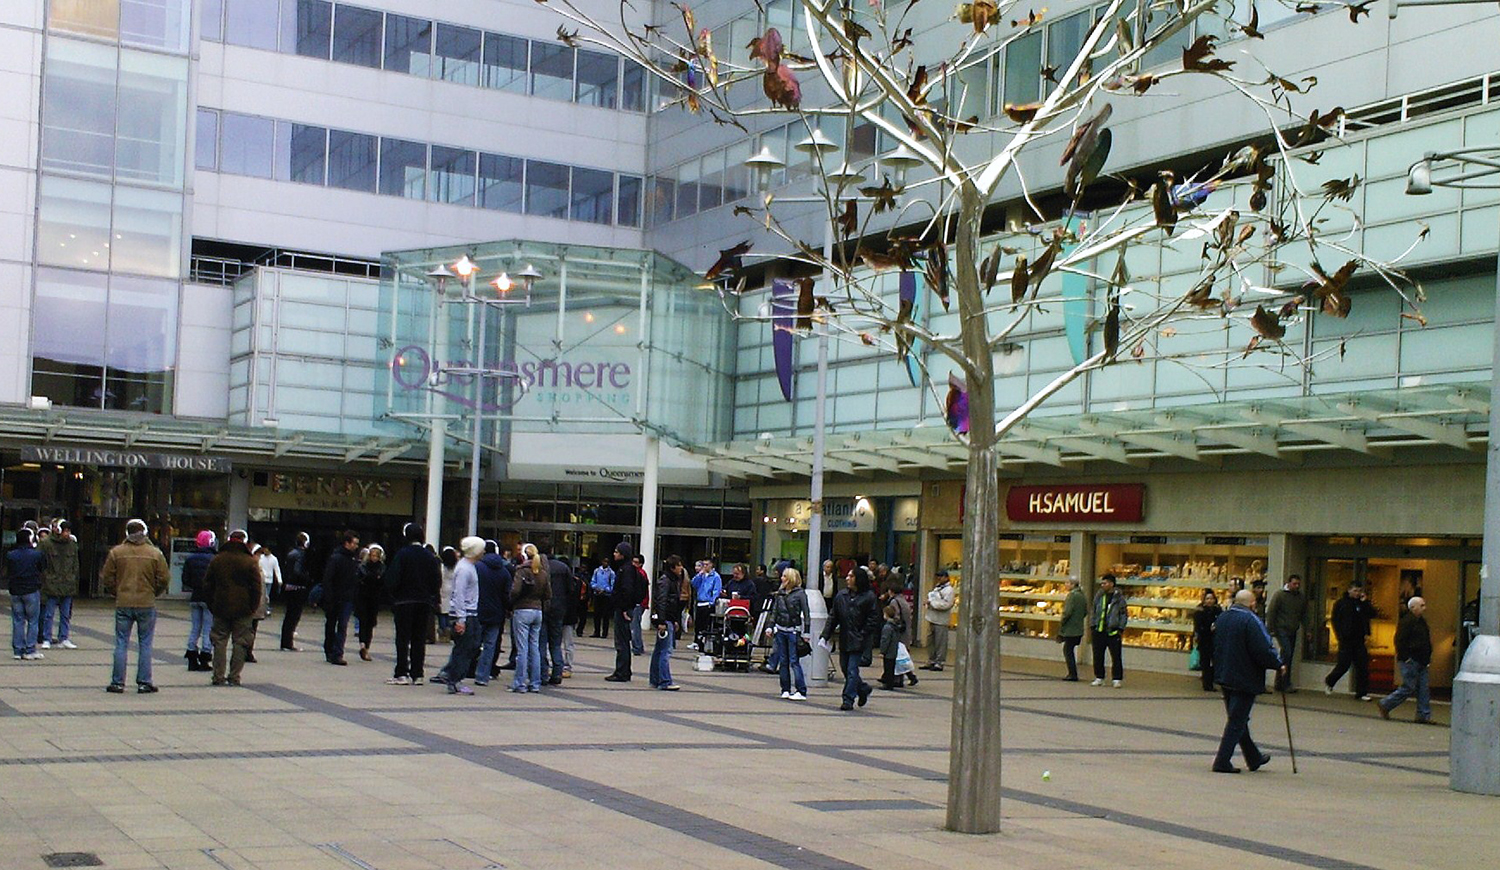 COMMERCIAL PROPERTY SLOUGH: area guide to the transports, rent and locations